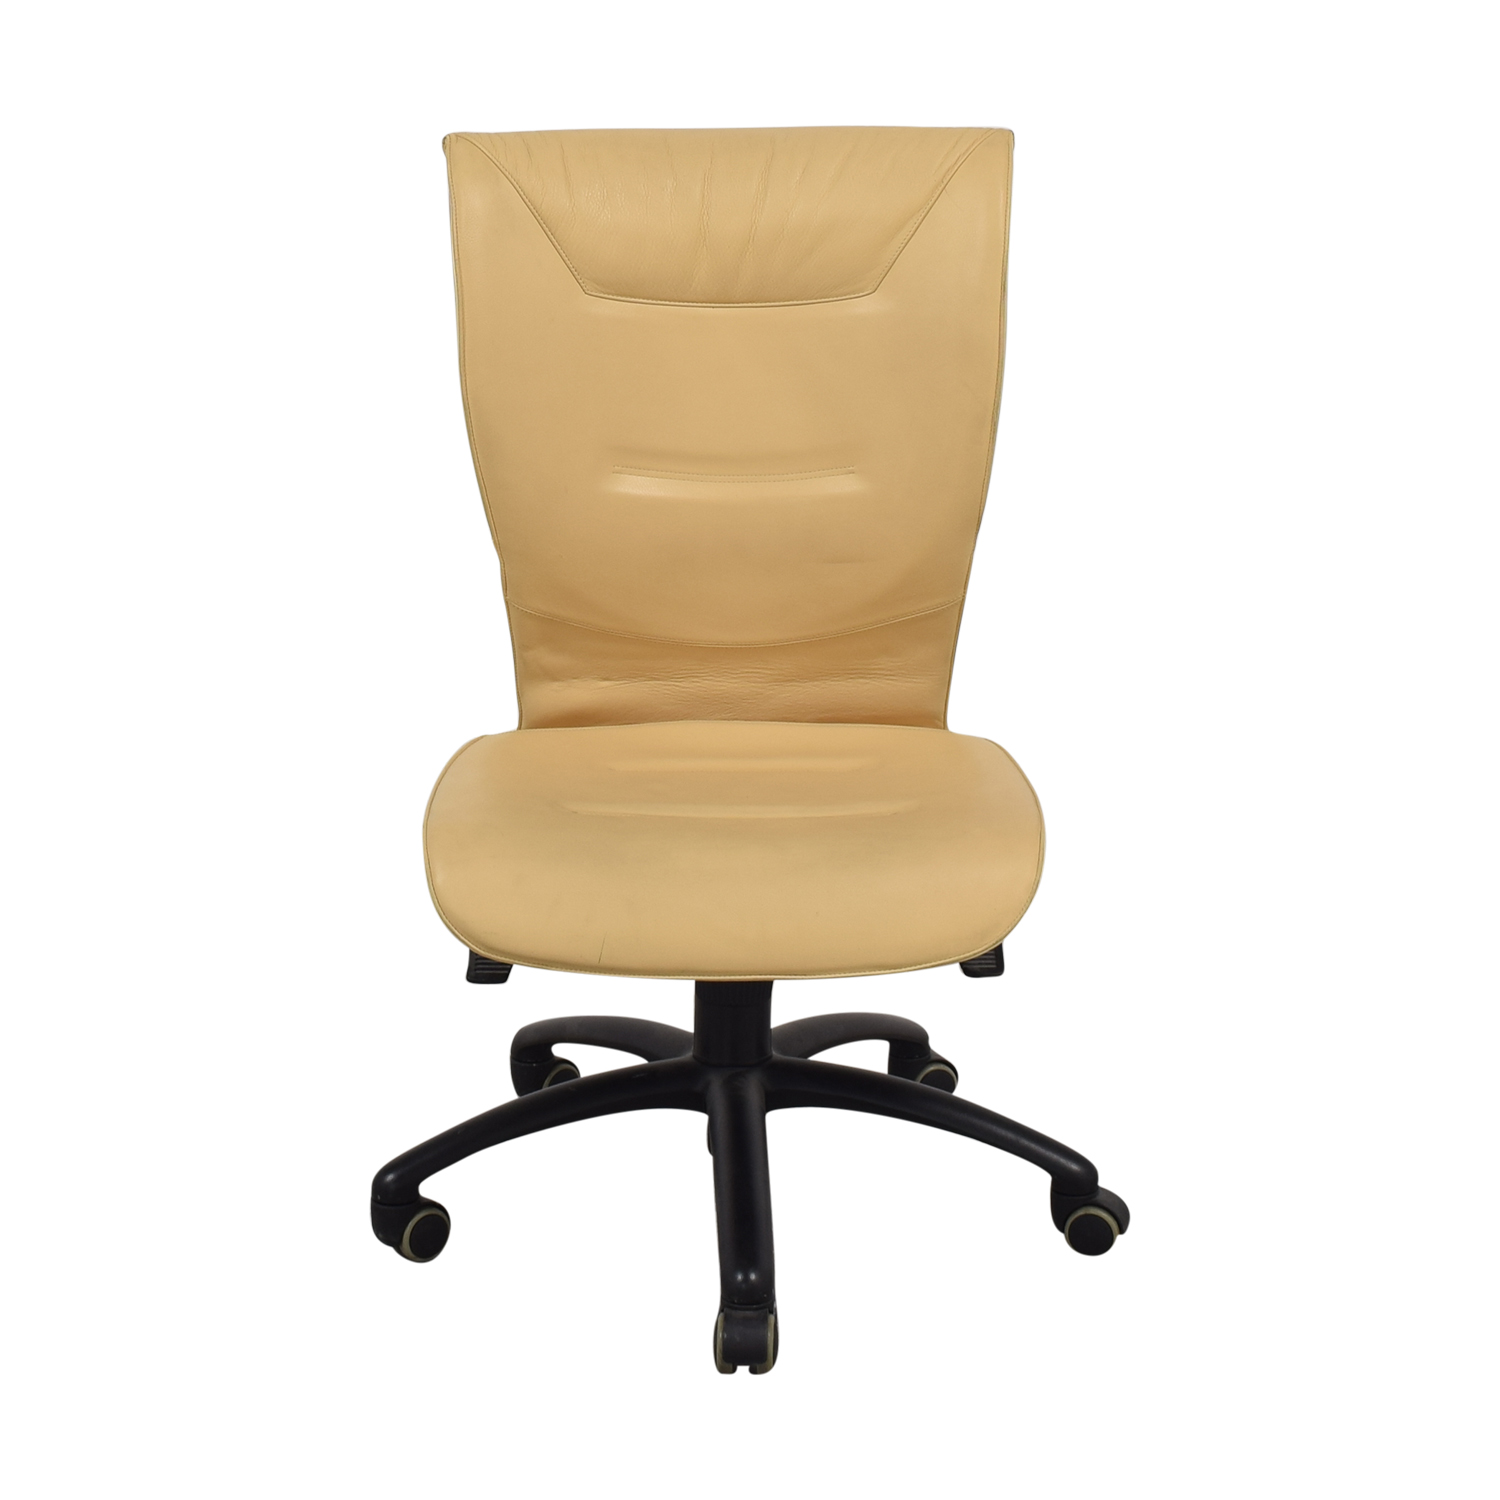 Poltrona Frau Office Chair / Home Office Chairs